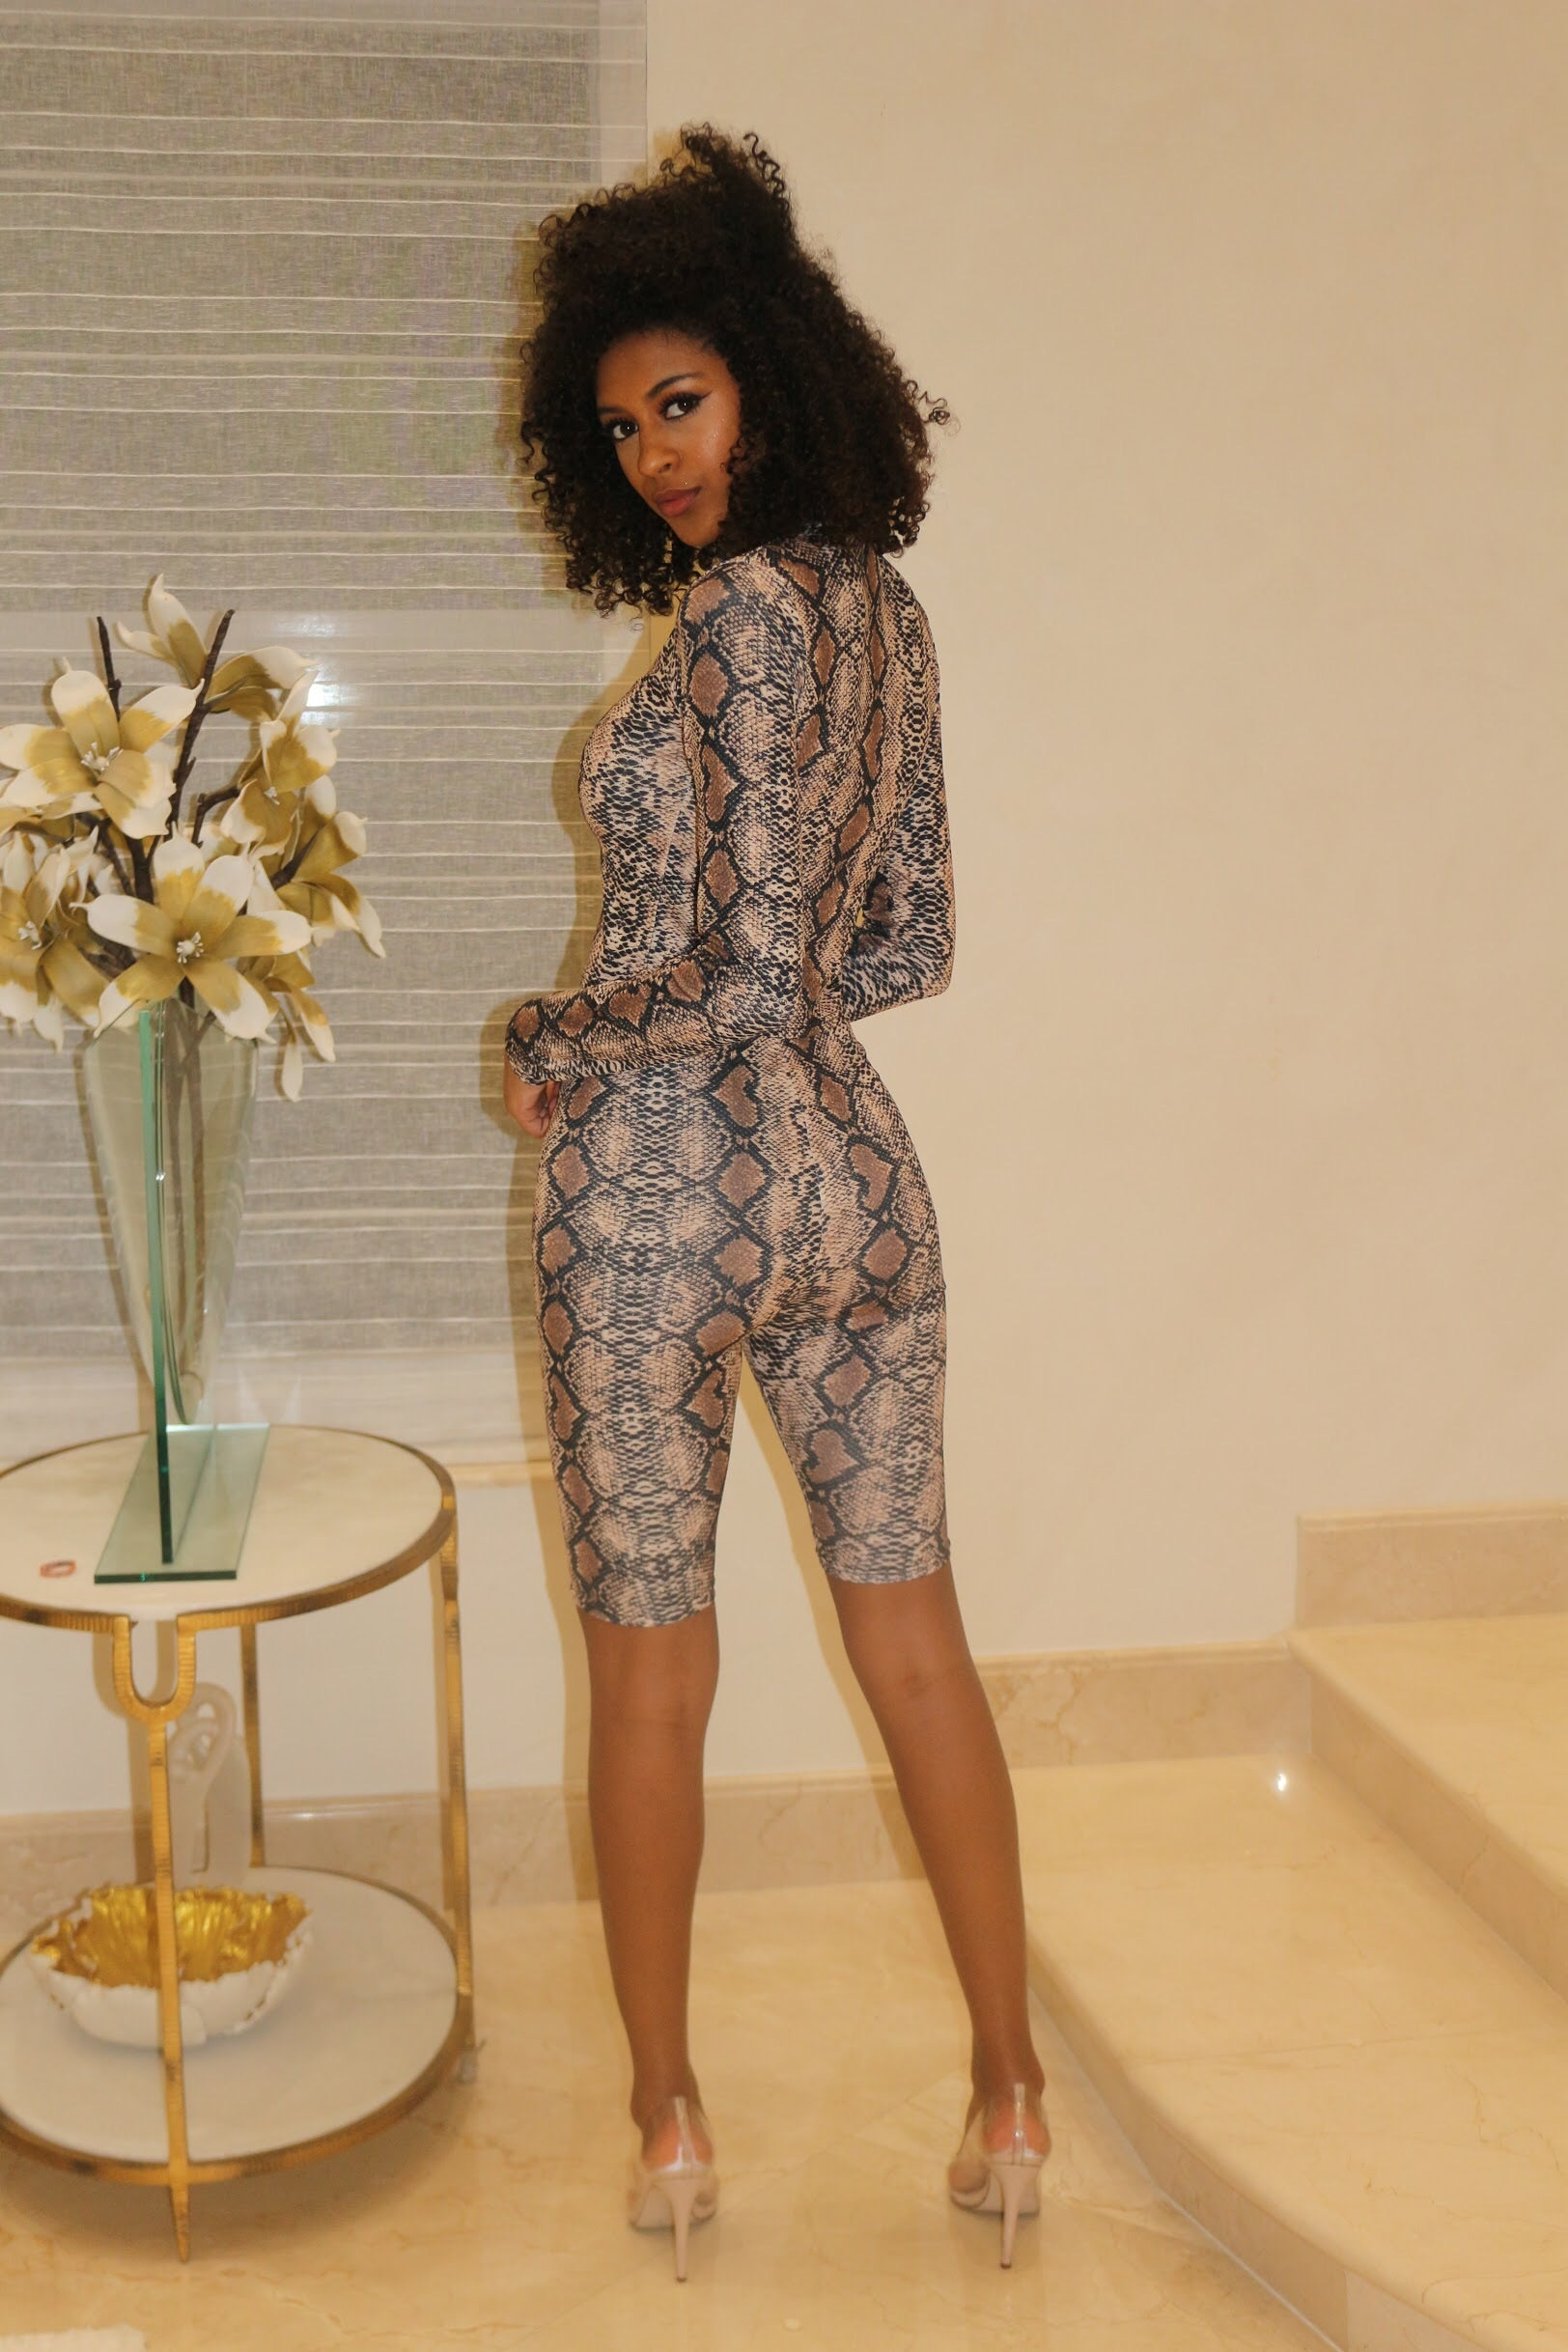 Fine Lines Leopard Biker Short Set - Semai House Of fashion